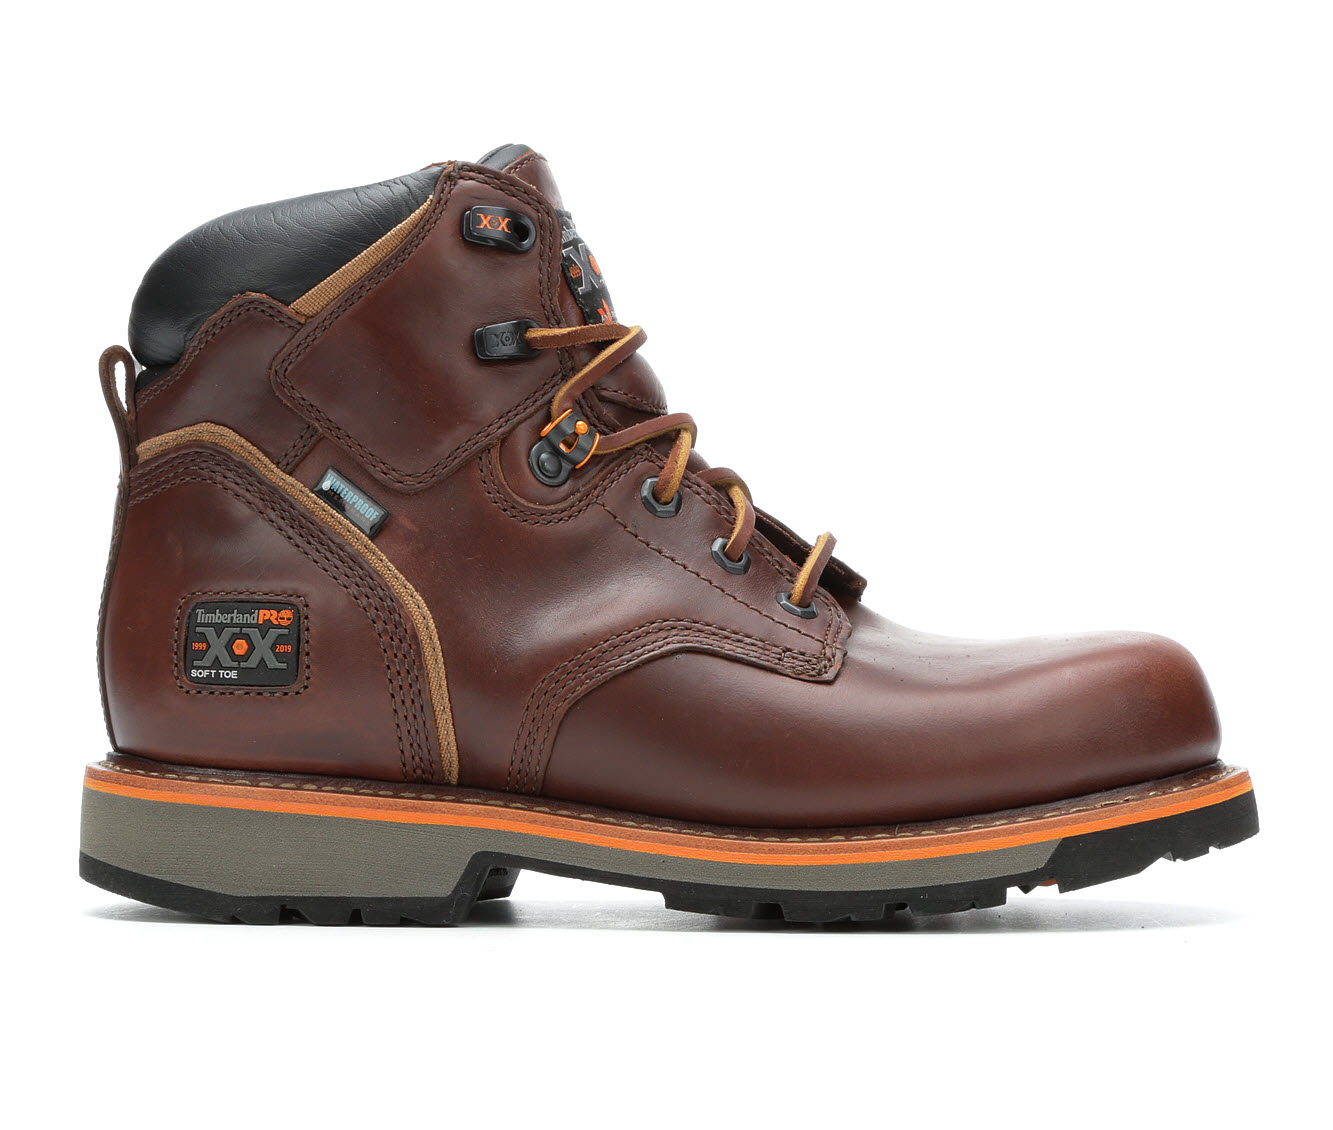 Timberland Pro Pit Boss XX Men's Boots (Brown Leather)